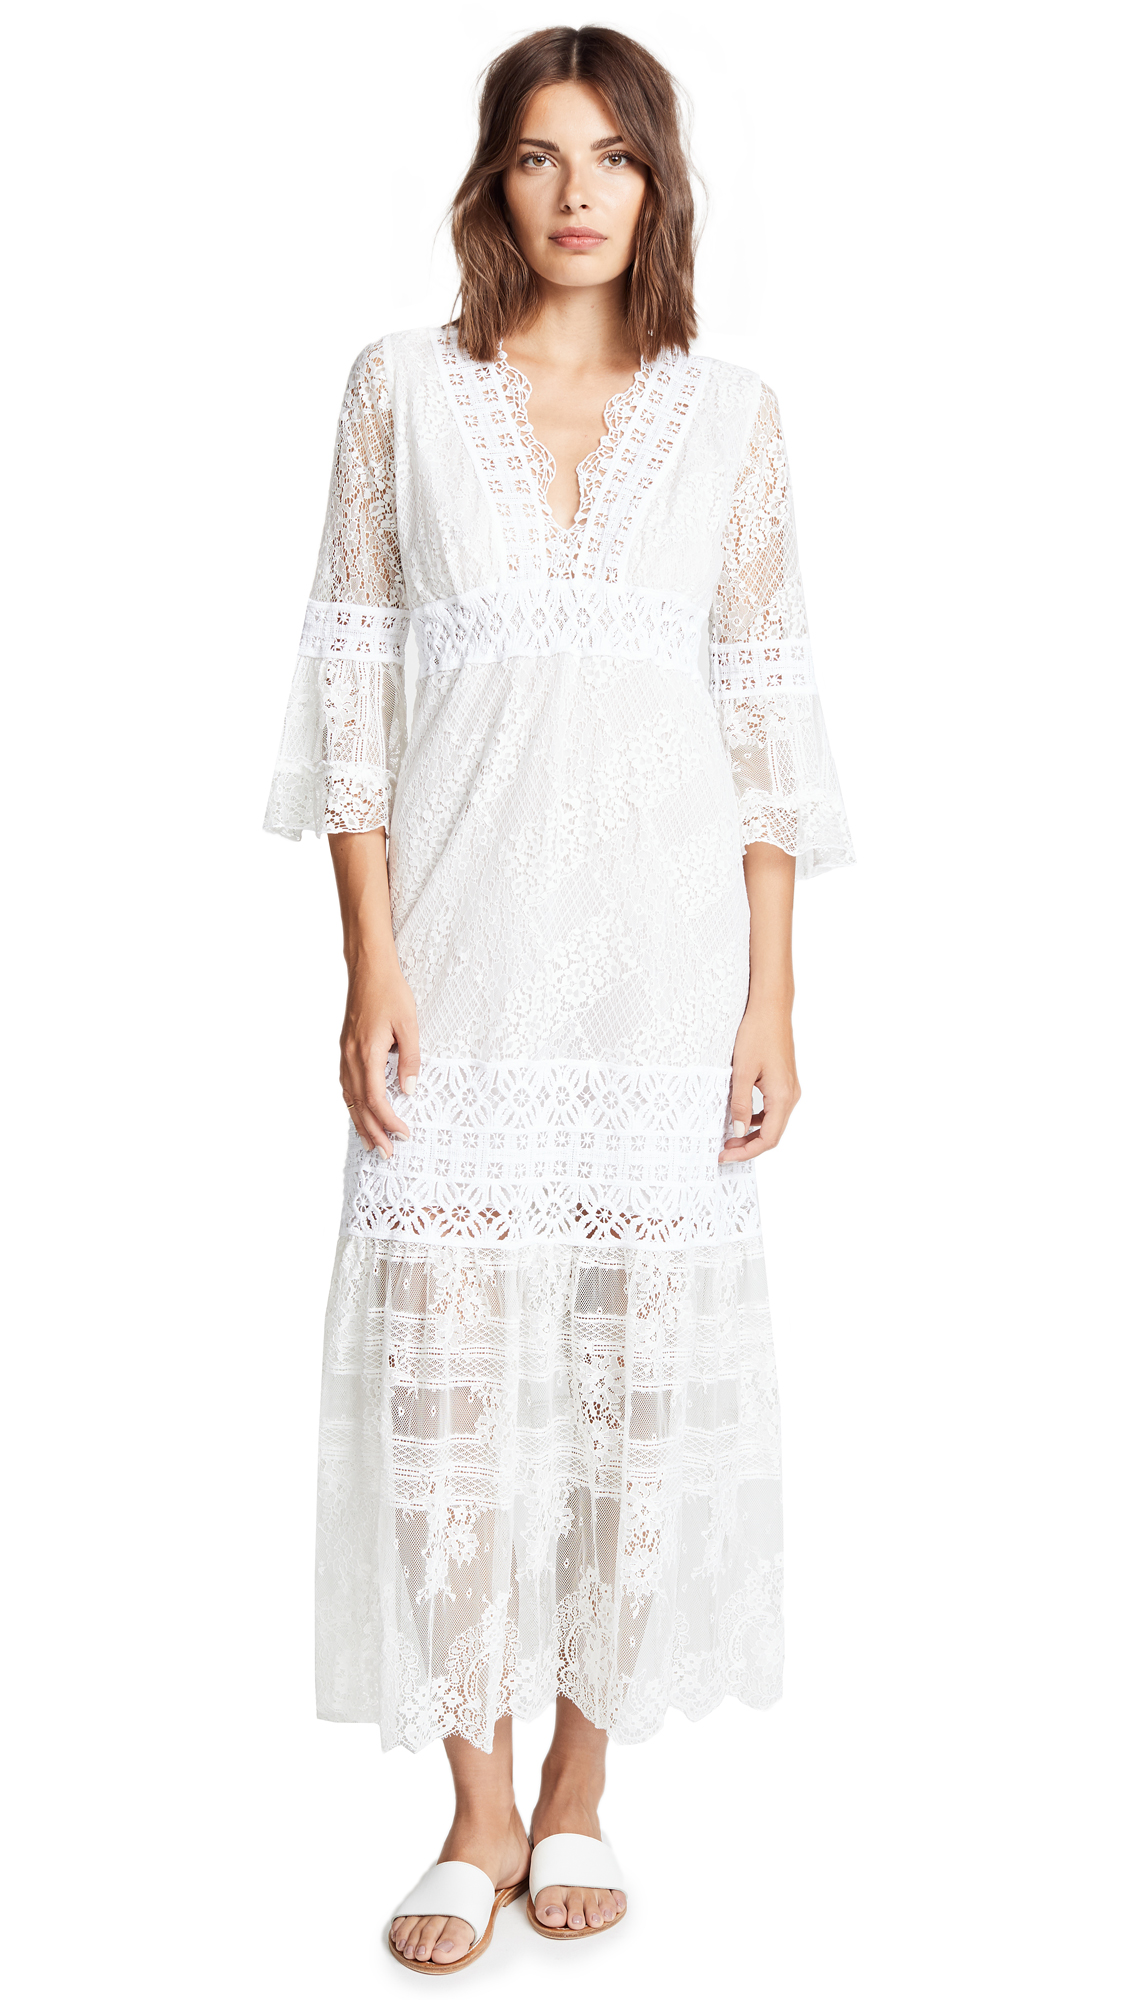 TEMPTATION POSITANO V NECK LACE DRESS